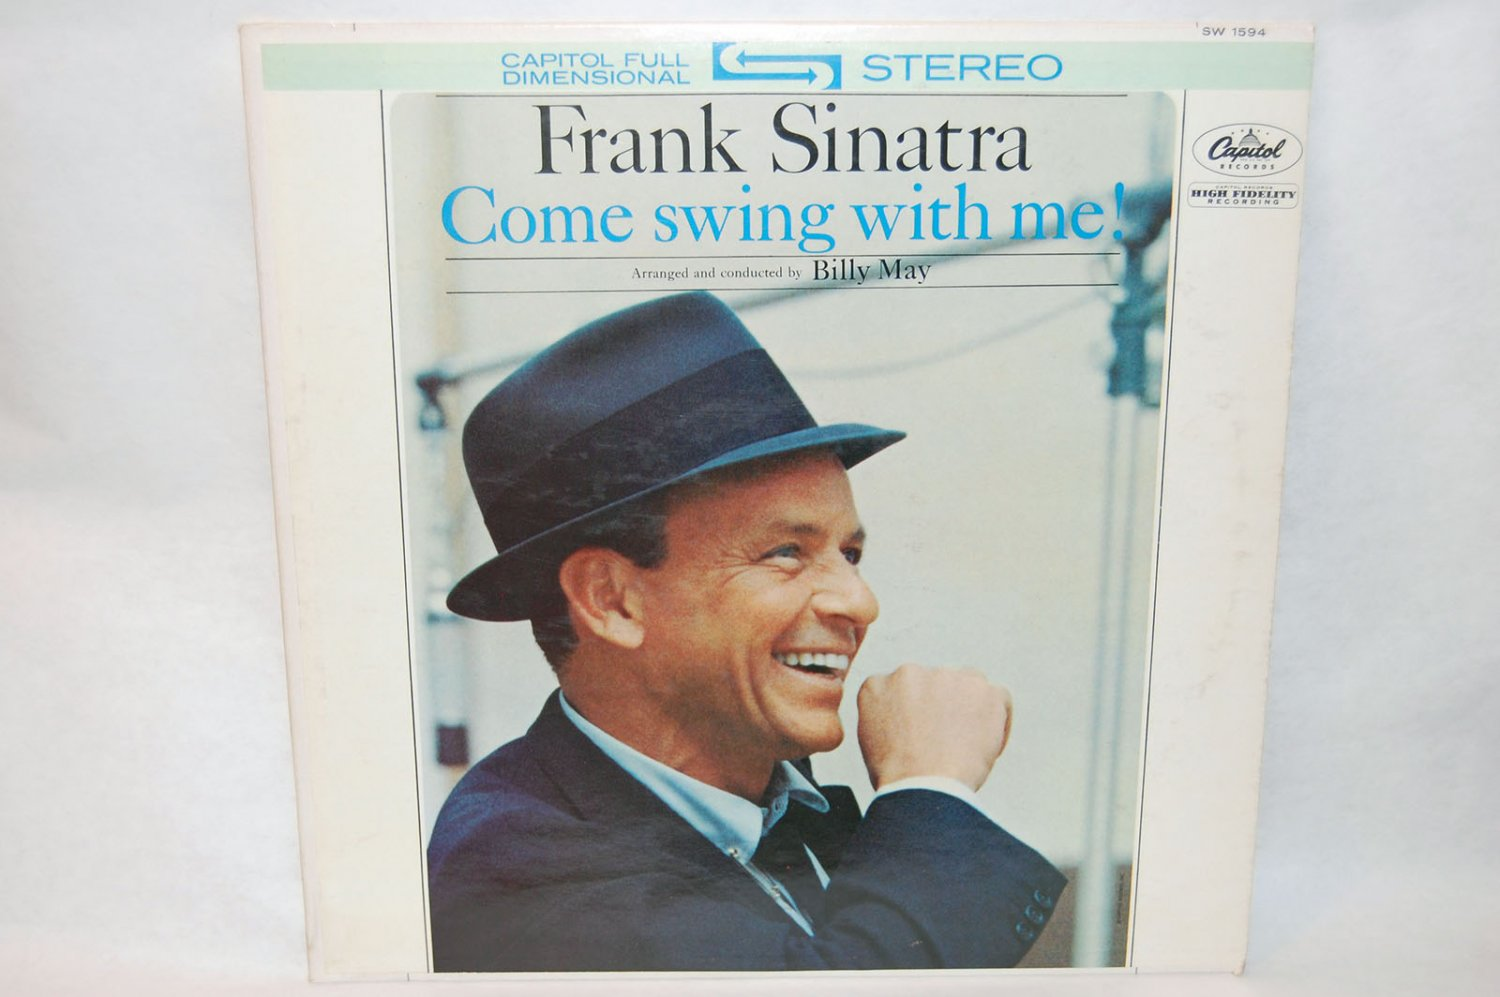 """FRANK SINATRA Come Swing With Me 12"""" Vinyl LP Capitol SW-1594"""